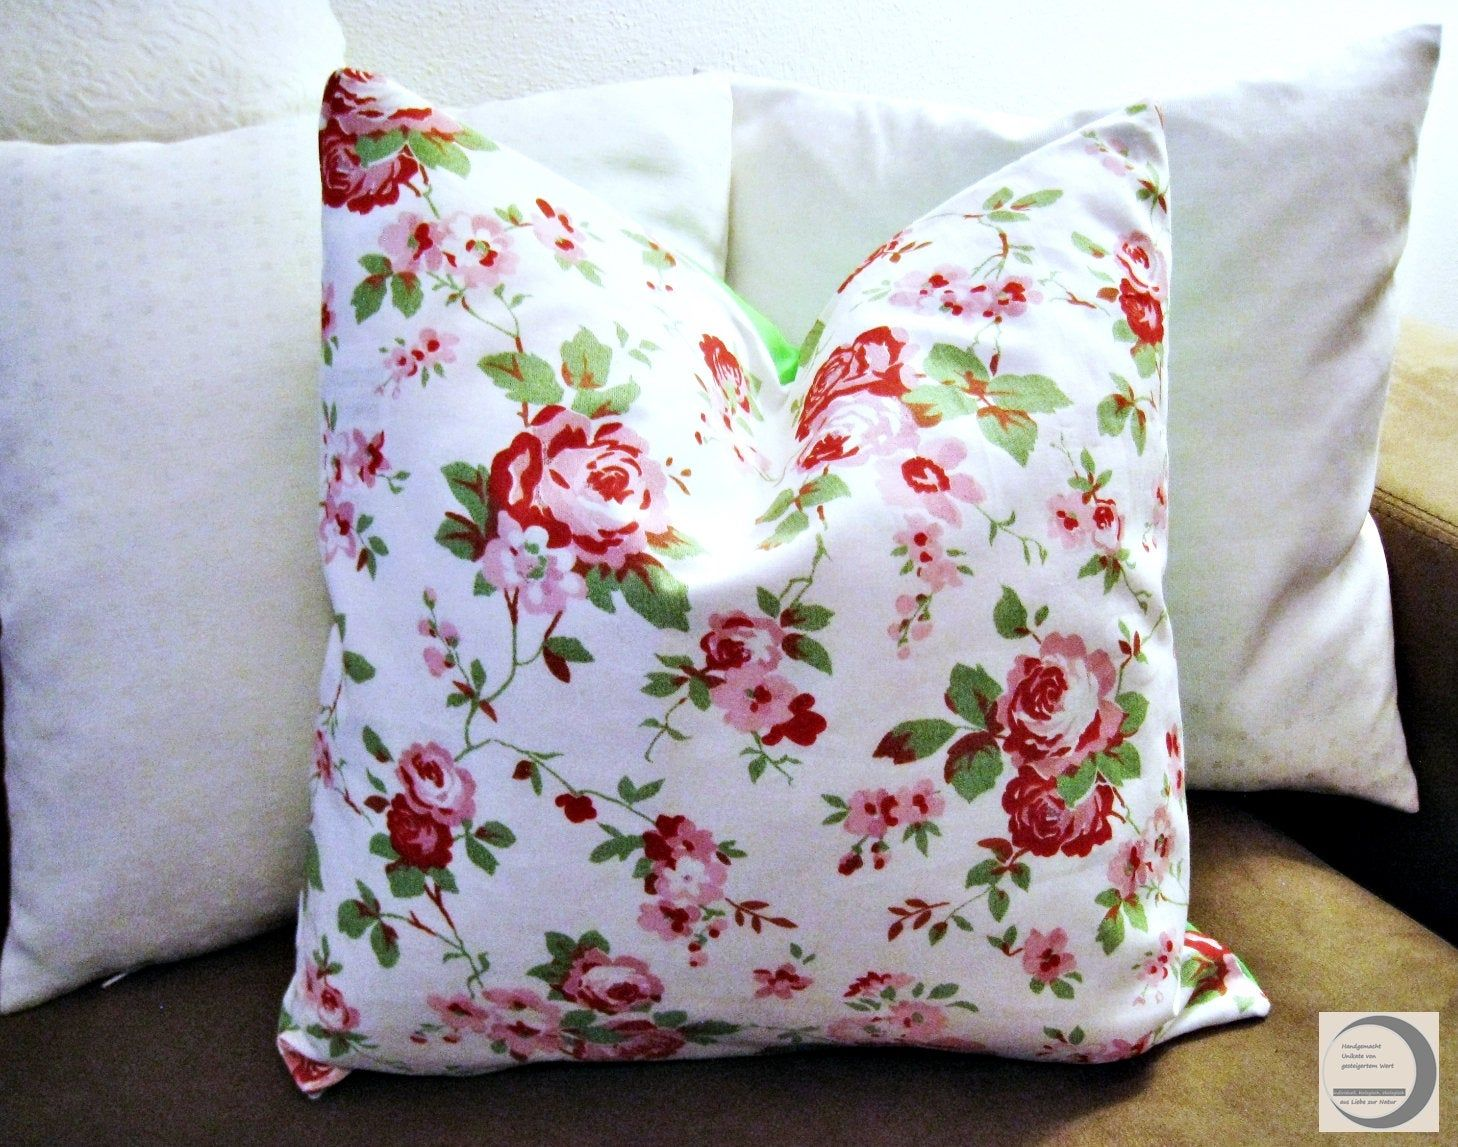 Pillowcase 40 X 40 Cm 15 75x15 75 Pillow Case With Rose Pattern